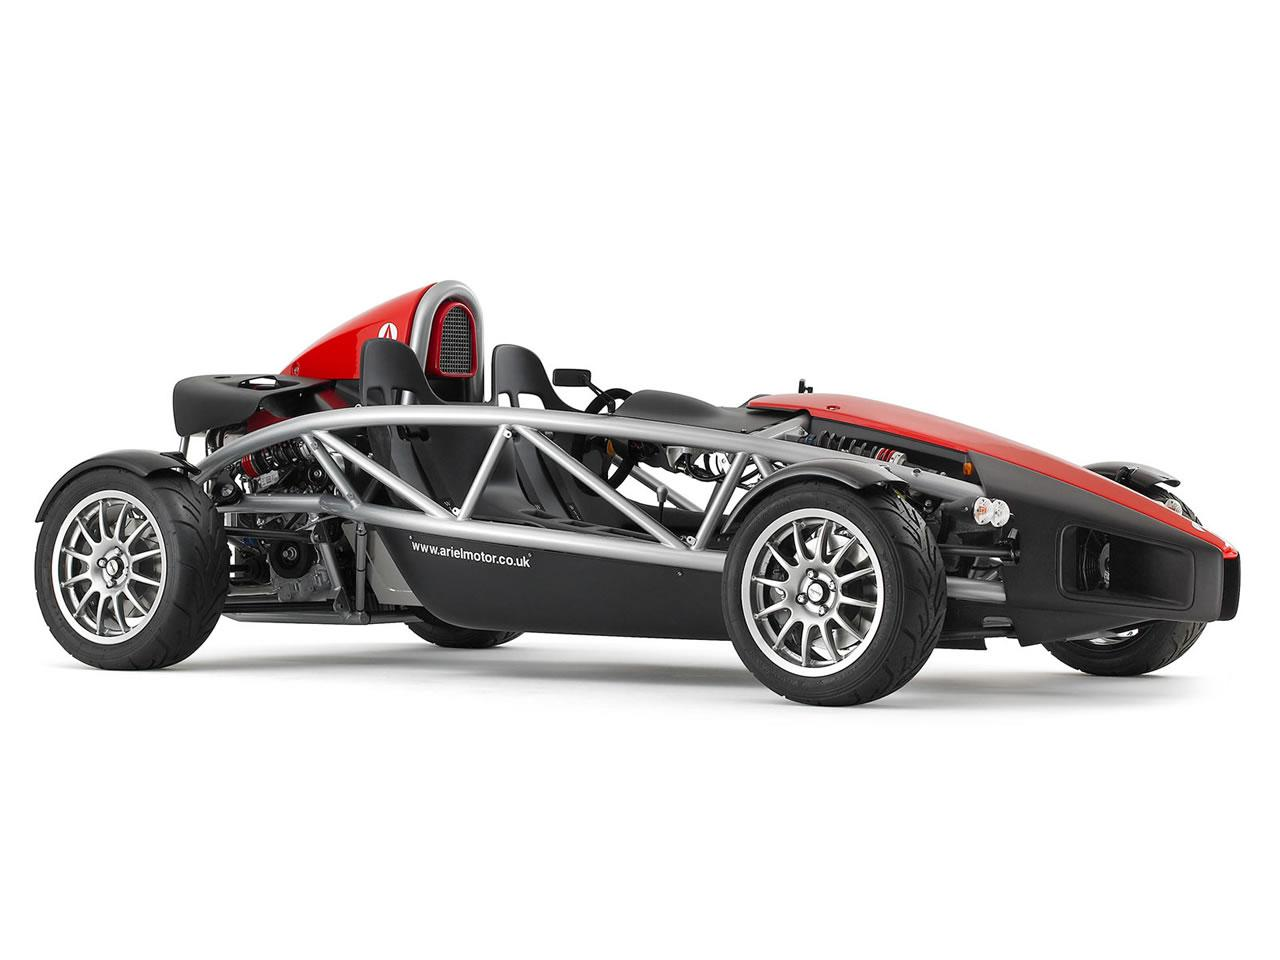 Ariel Atom Buying Guide